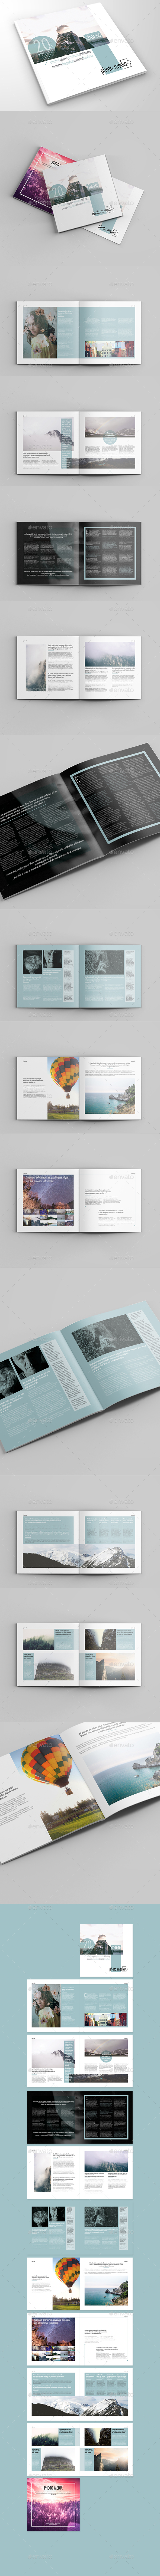 Photo Media Square Catalog&Brochure - Brochures Print Templates